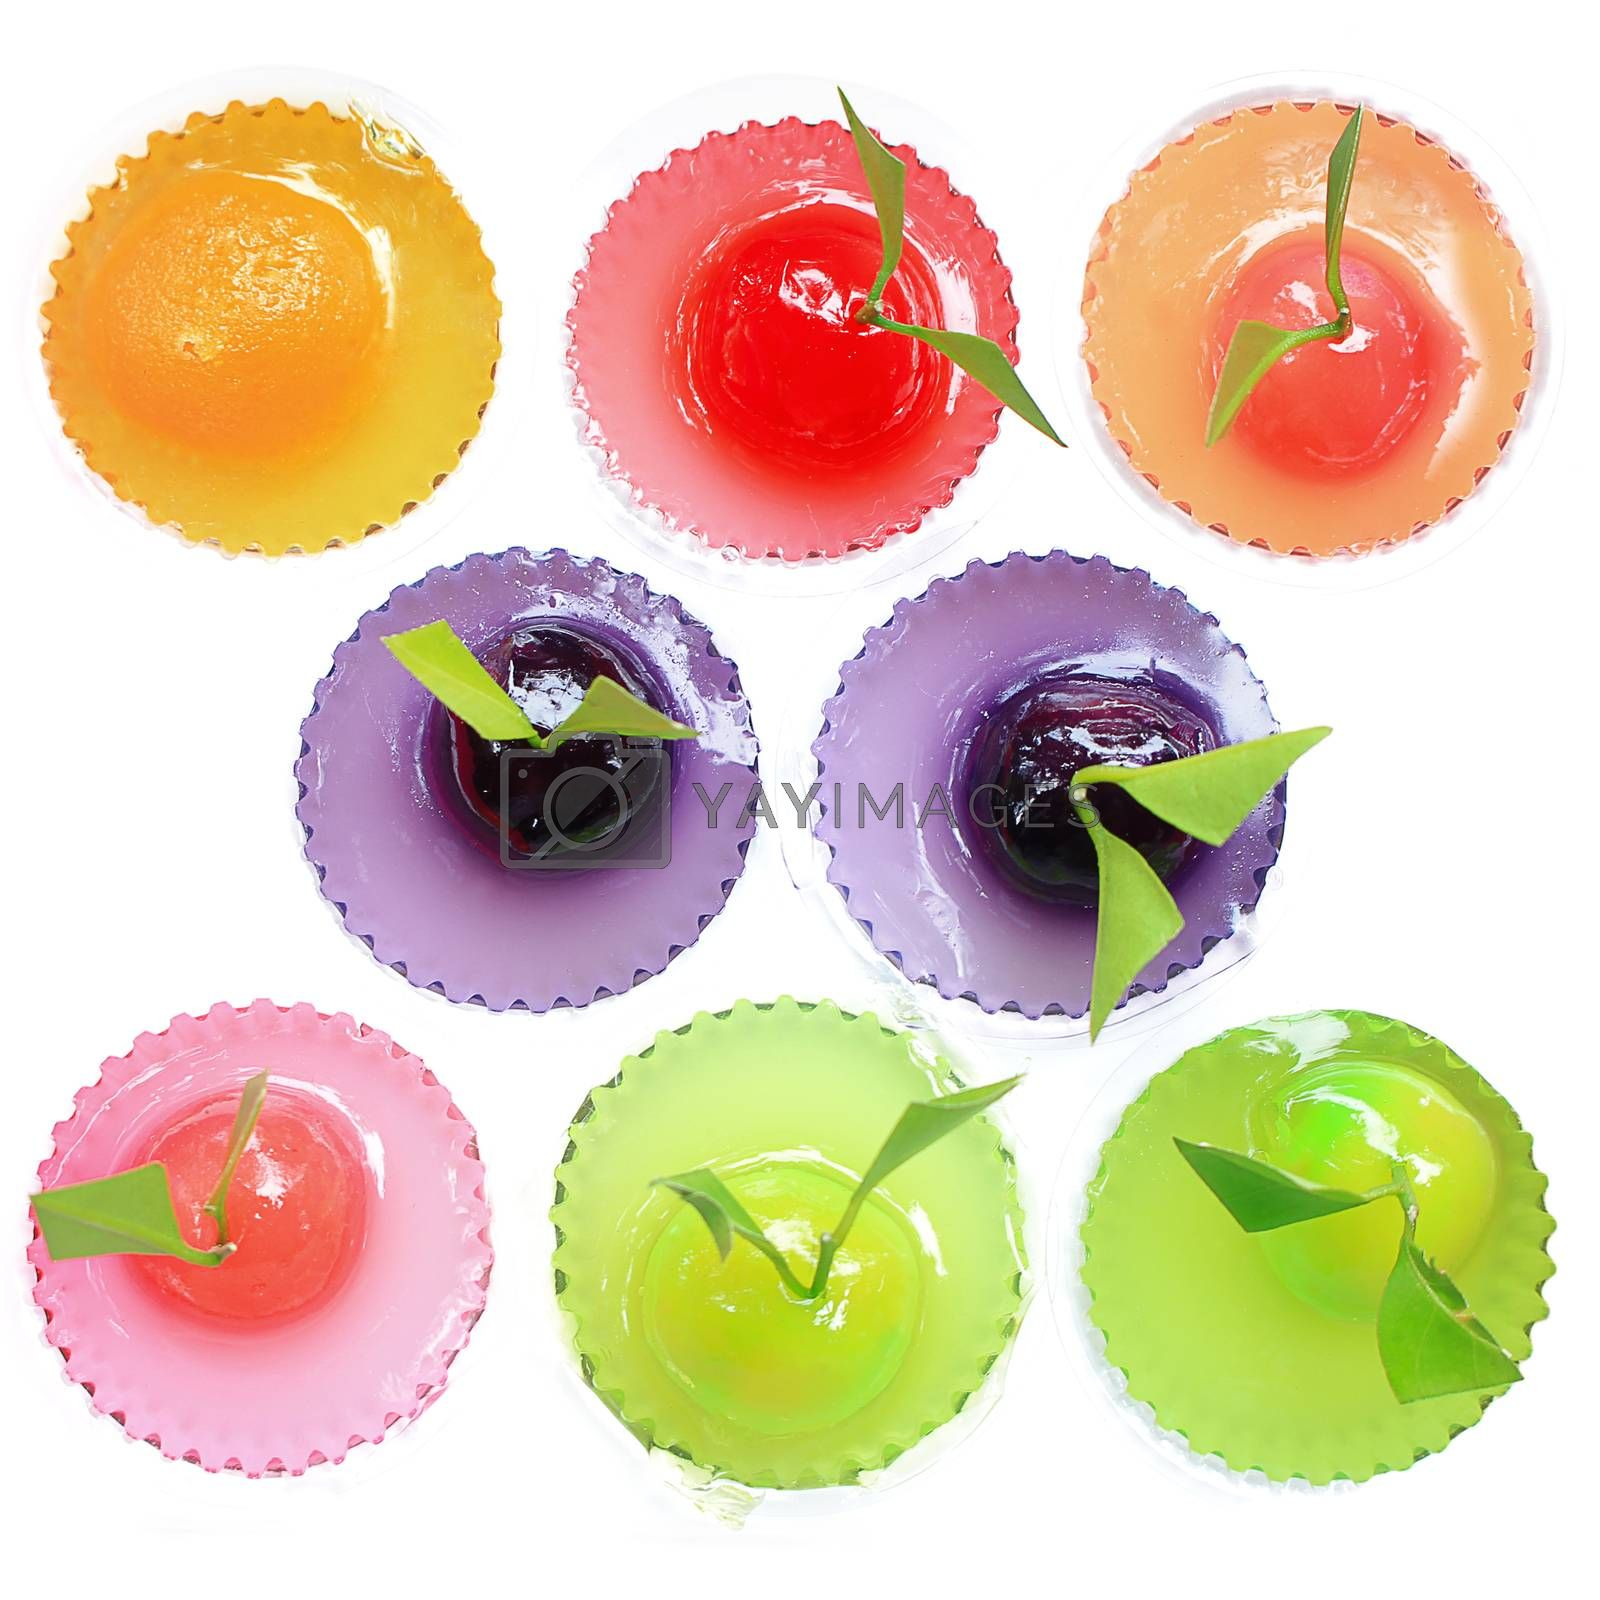 Different colored jelly sweets with white background